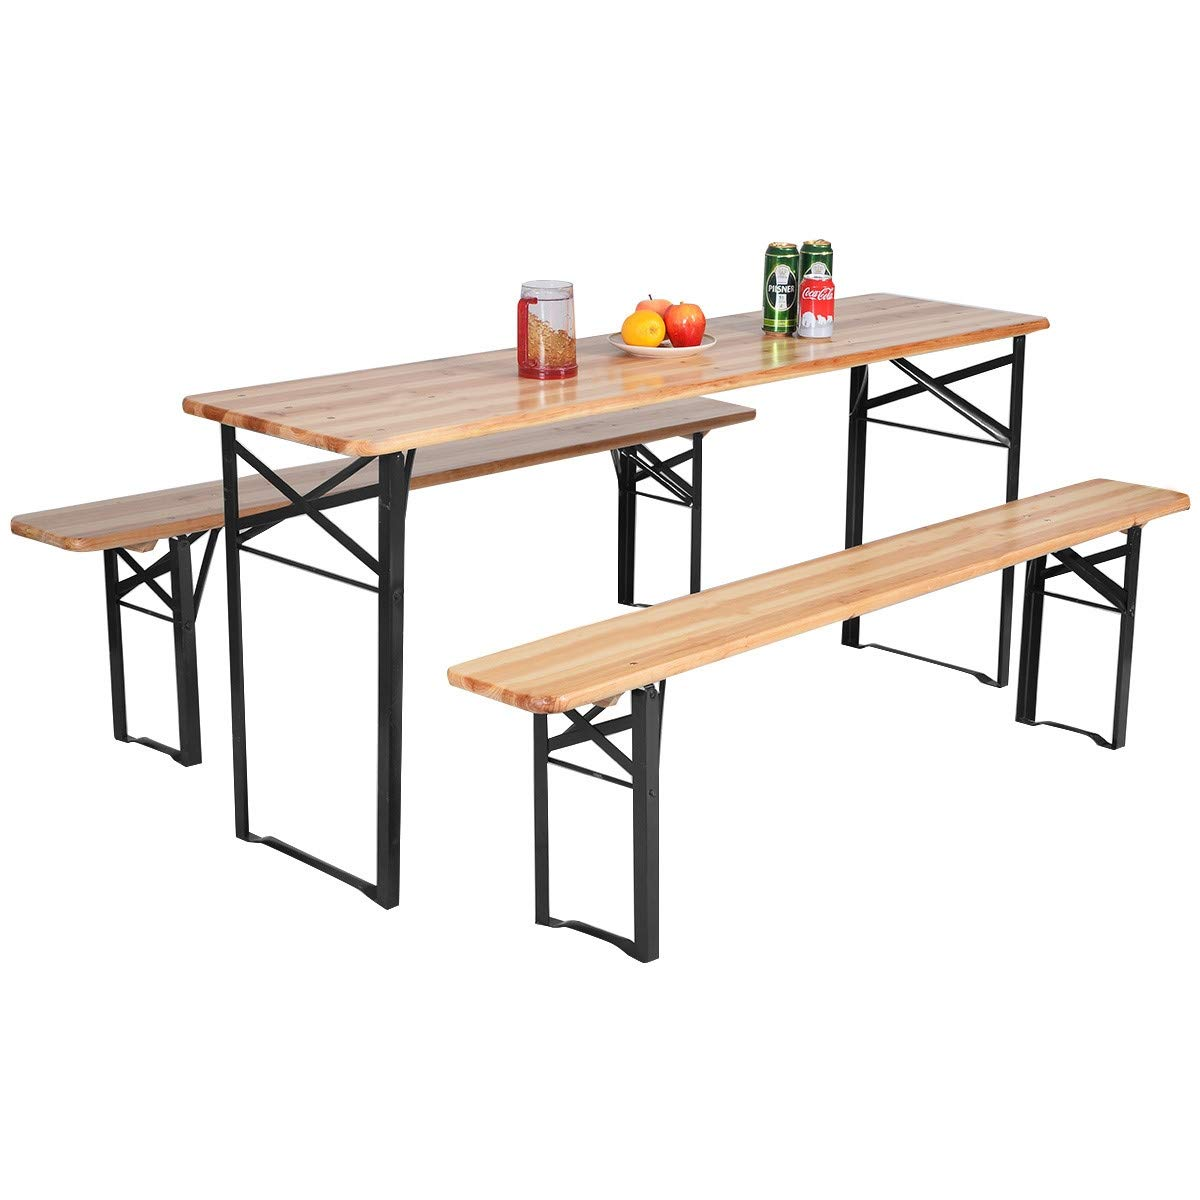 Cypress Shop Folding Wooden Picnic Table Camping Table Resting Dining Table Portable BBQ Picnic Benches Table Set Garden Yard Park Barbecue Party Dining Camping Table RV Trips Party Set of 3